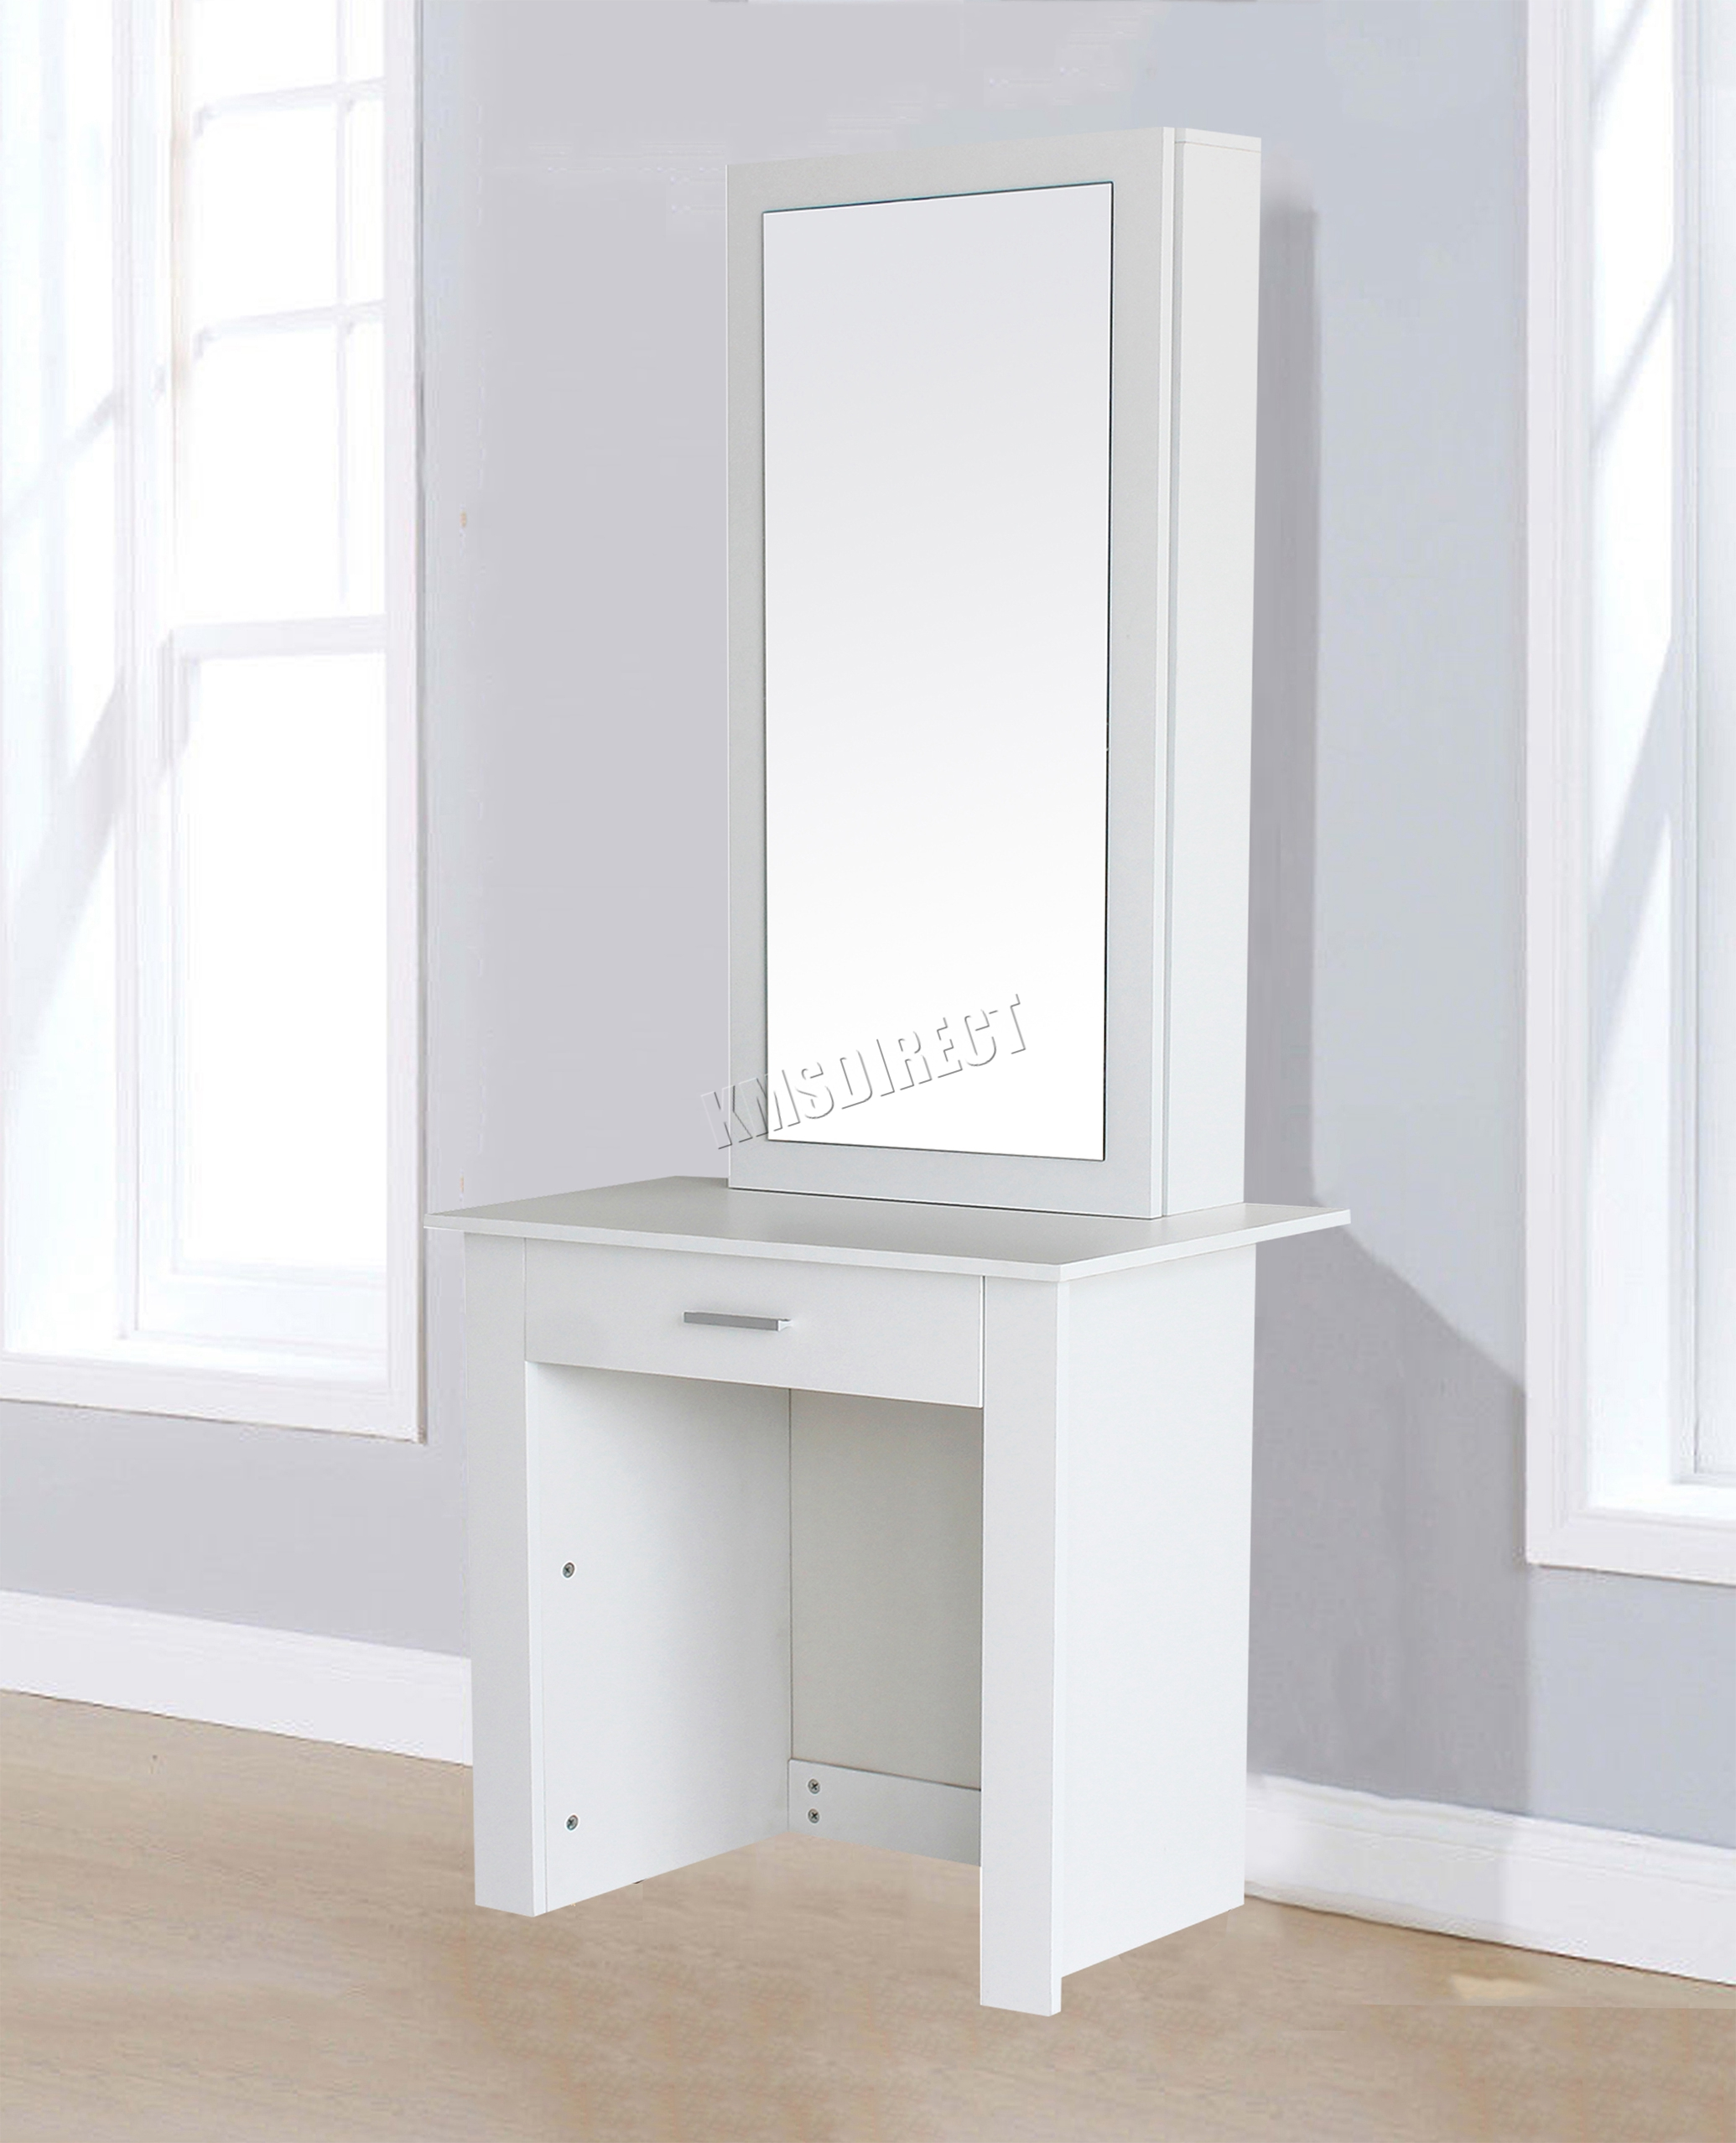 Sentinel Westwood Wooden Makeup Jewelry Dressing Table With Sliding Mirror Drawer Dt04